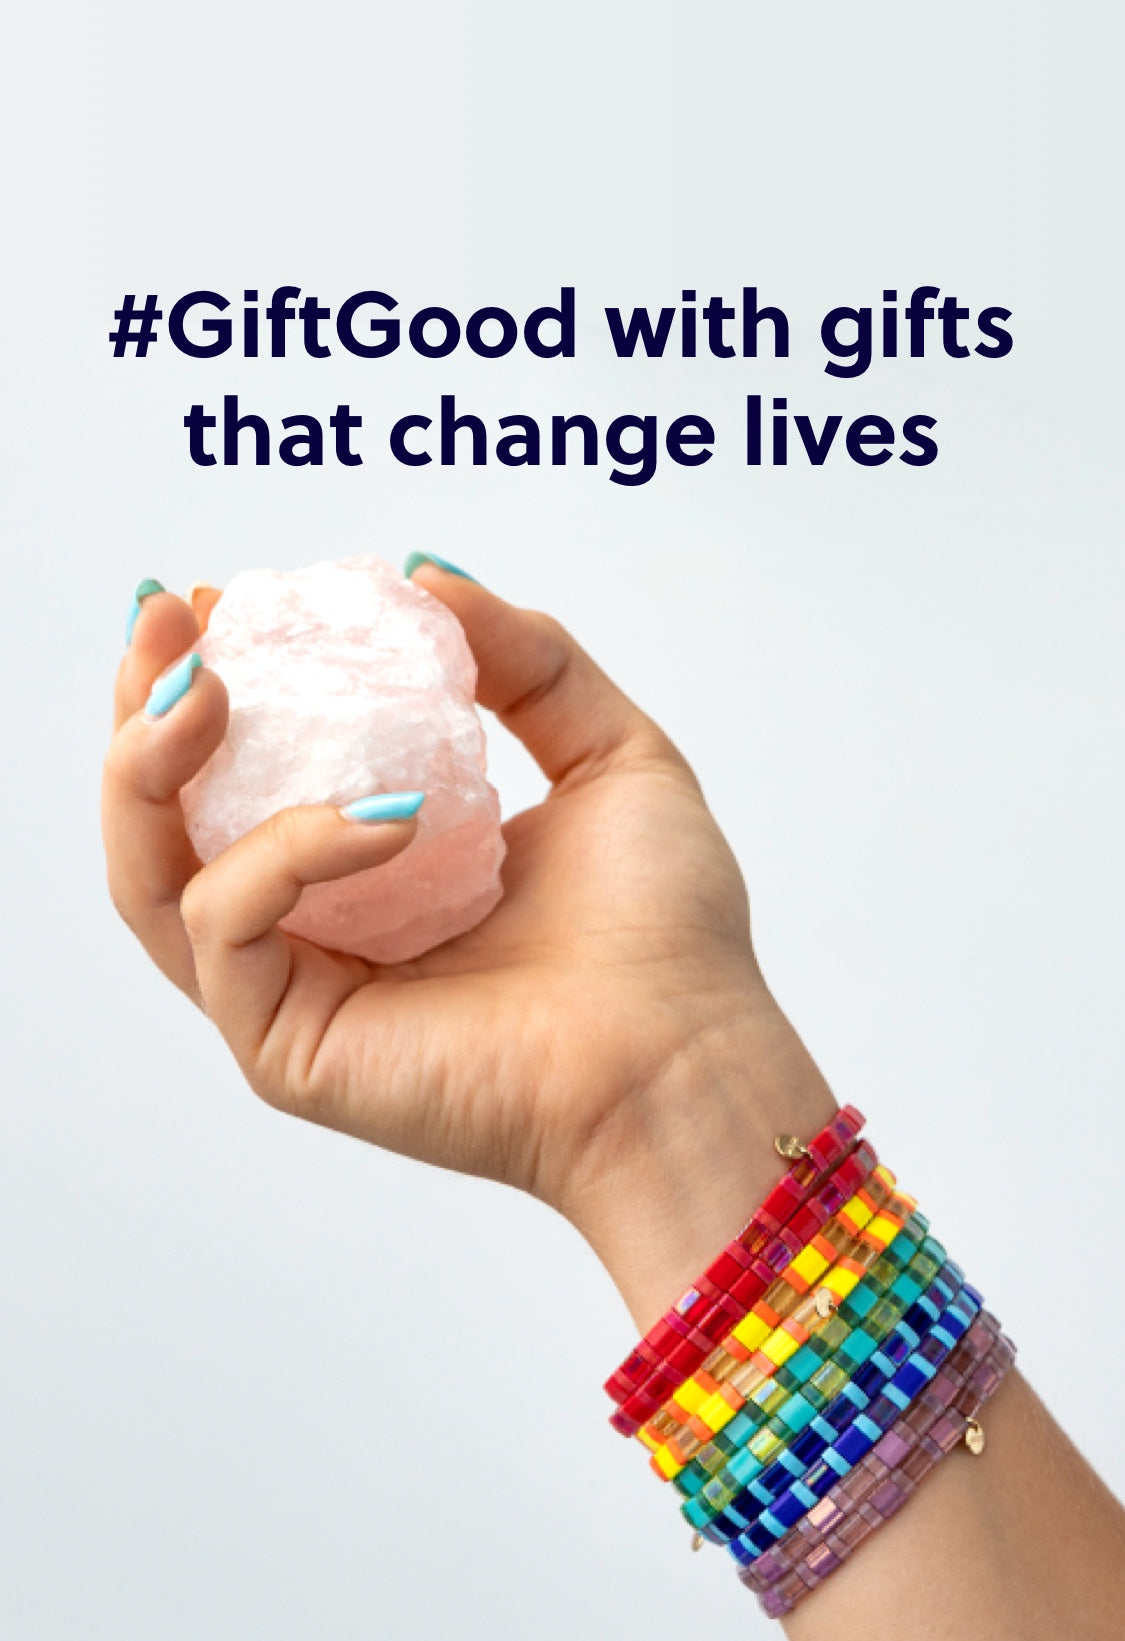 GiftGood with gift that change lives.